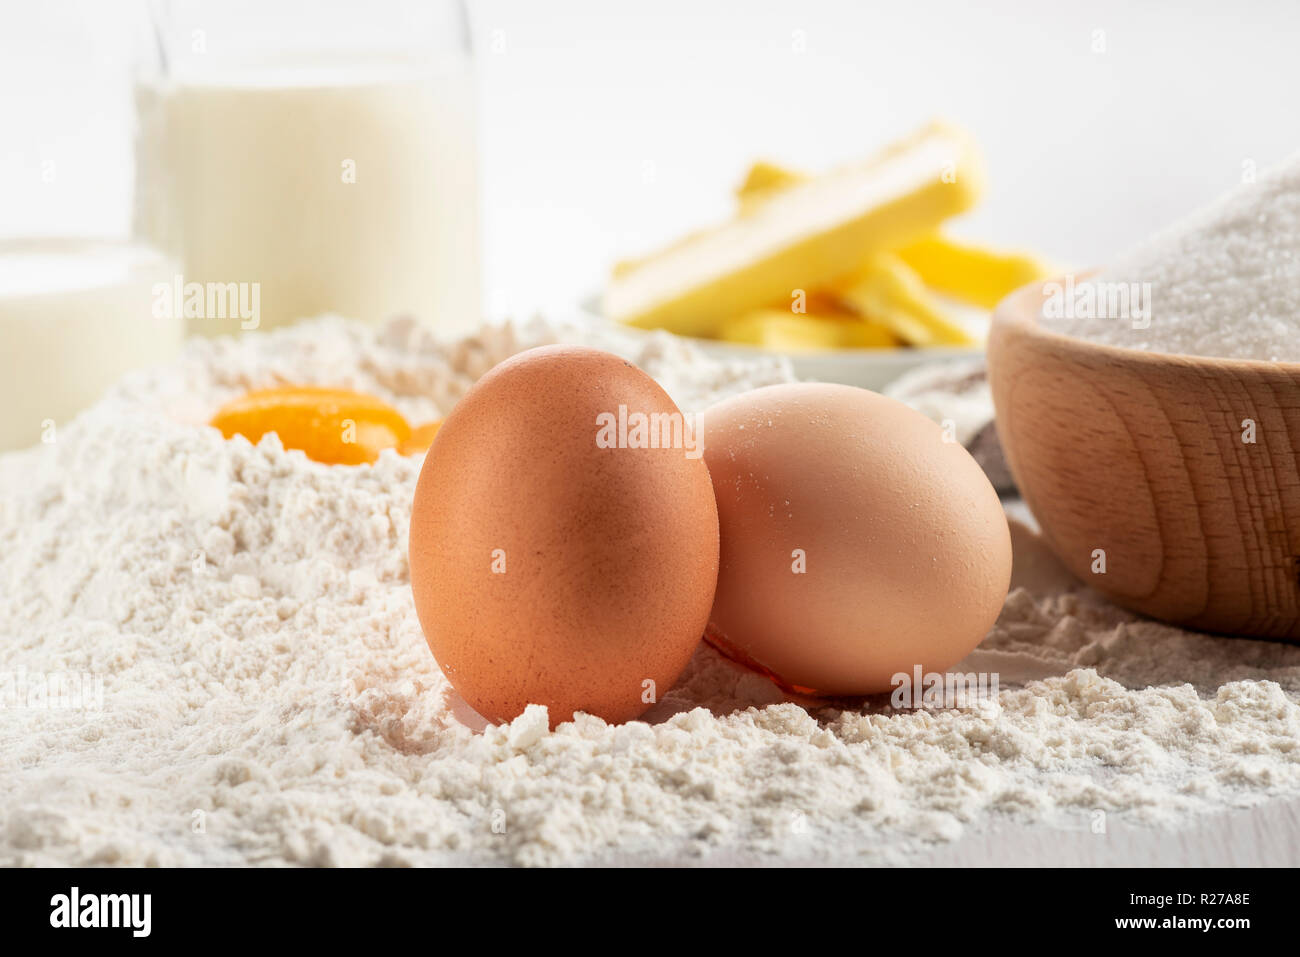 Ingredients for dough and pastry on wooden table, close up on eggs. - Stock Image